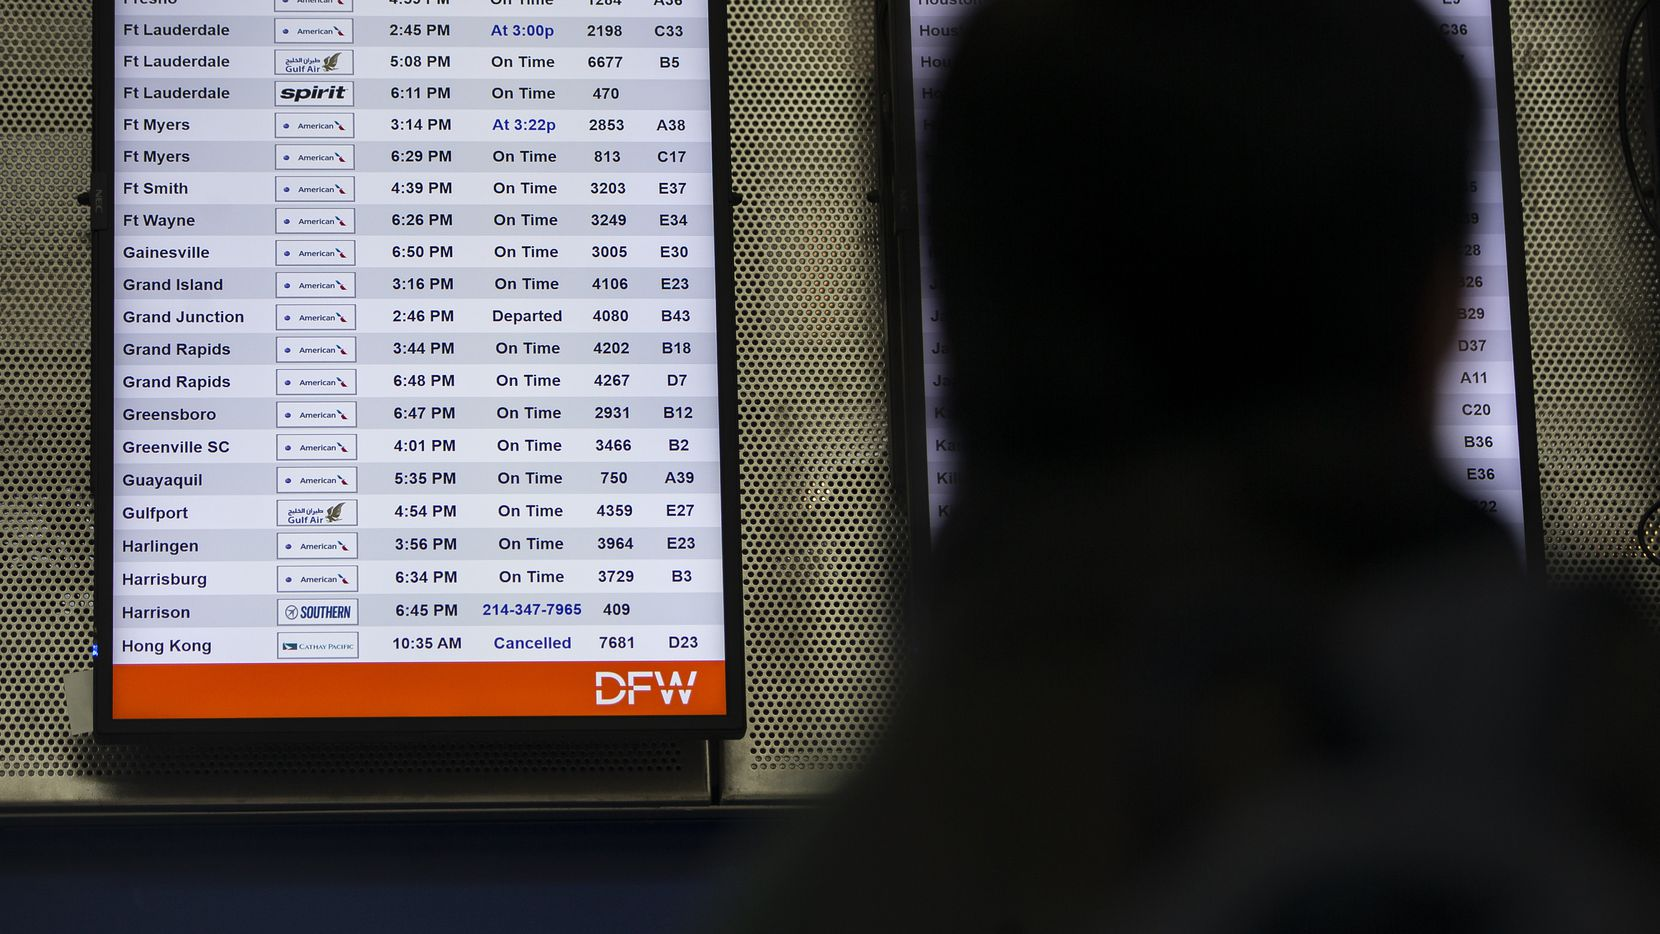 A cancelled flight departing to Hong Kong is shown on the board in Terminal D at DFW International Airport on Jan. 31, 2020. American Airlines is canceling all flights to mainland China as of Friday, but will keep flights to Hong Kong. (Juan Figueroa/ The Dallas Morning News